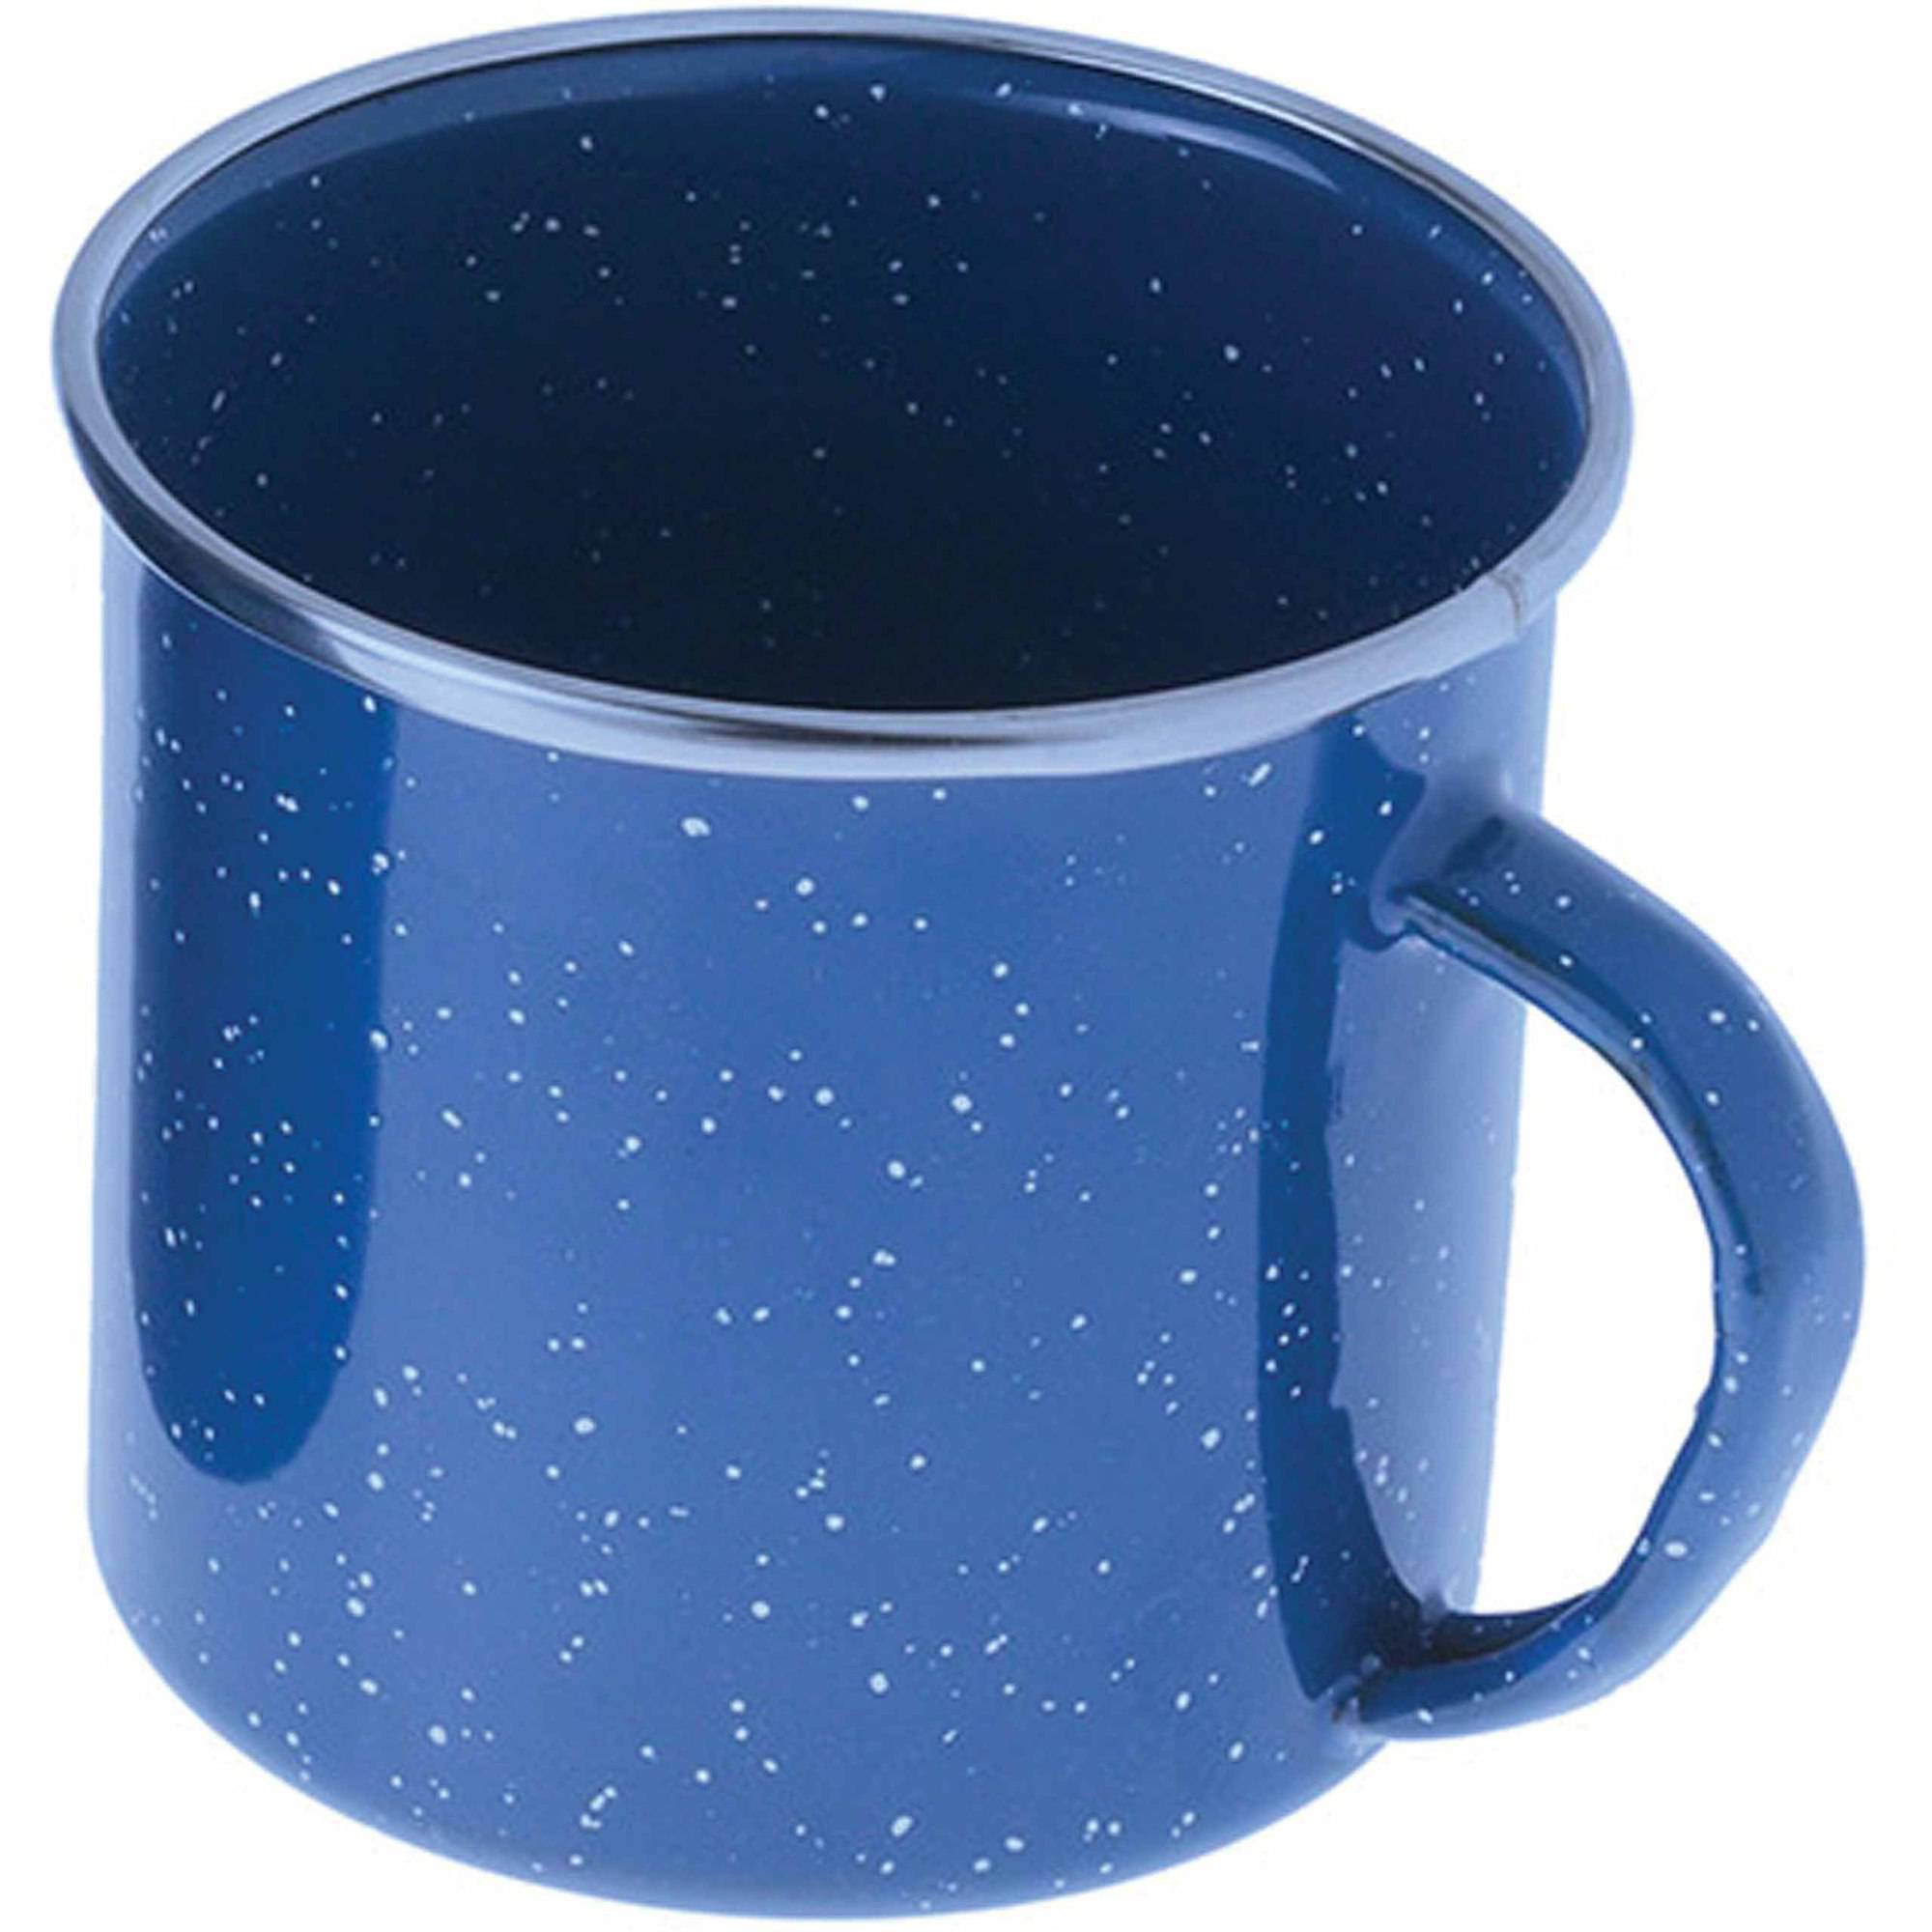 GSI Outdoors Stainless Steel Rim Enamelware Cup, Blue